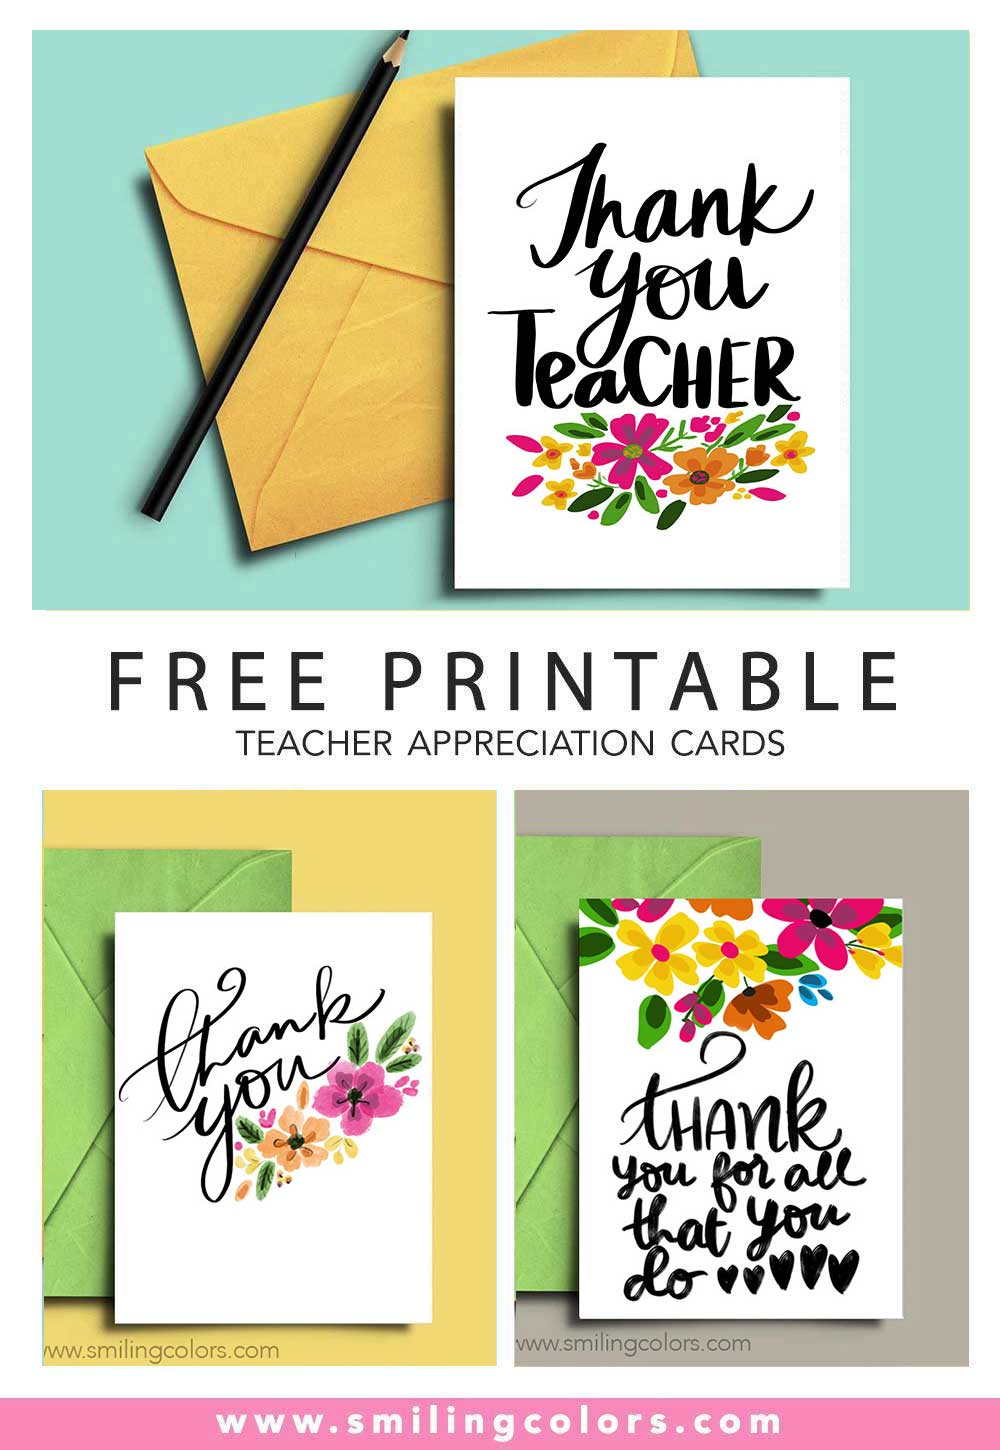 image relating to Thank You Teacher Free Printable called Thank oneself trainer: A preset of Totally free printable take note playing cards